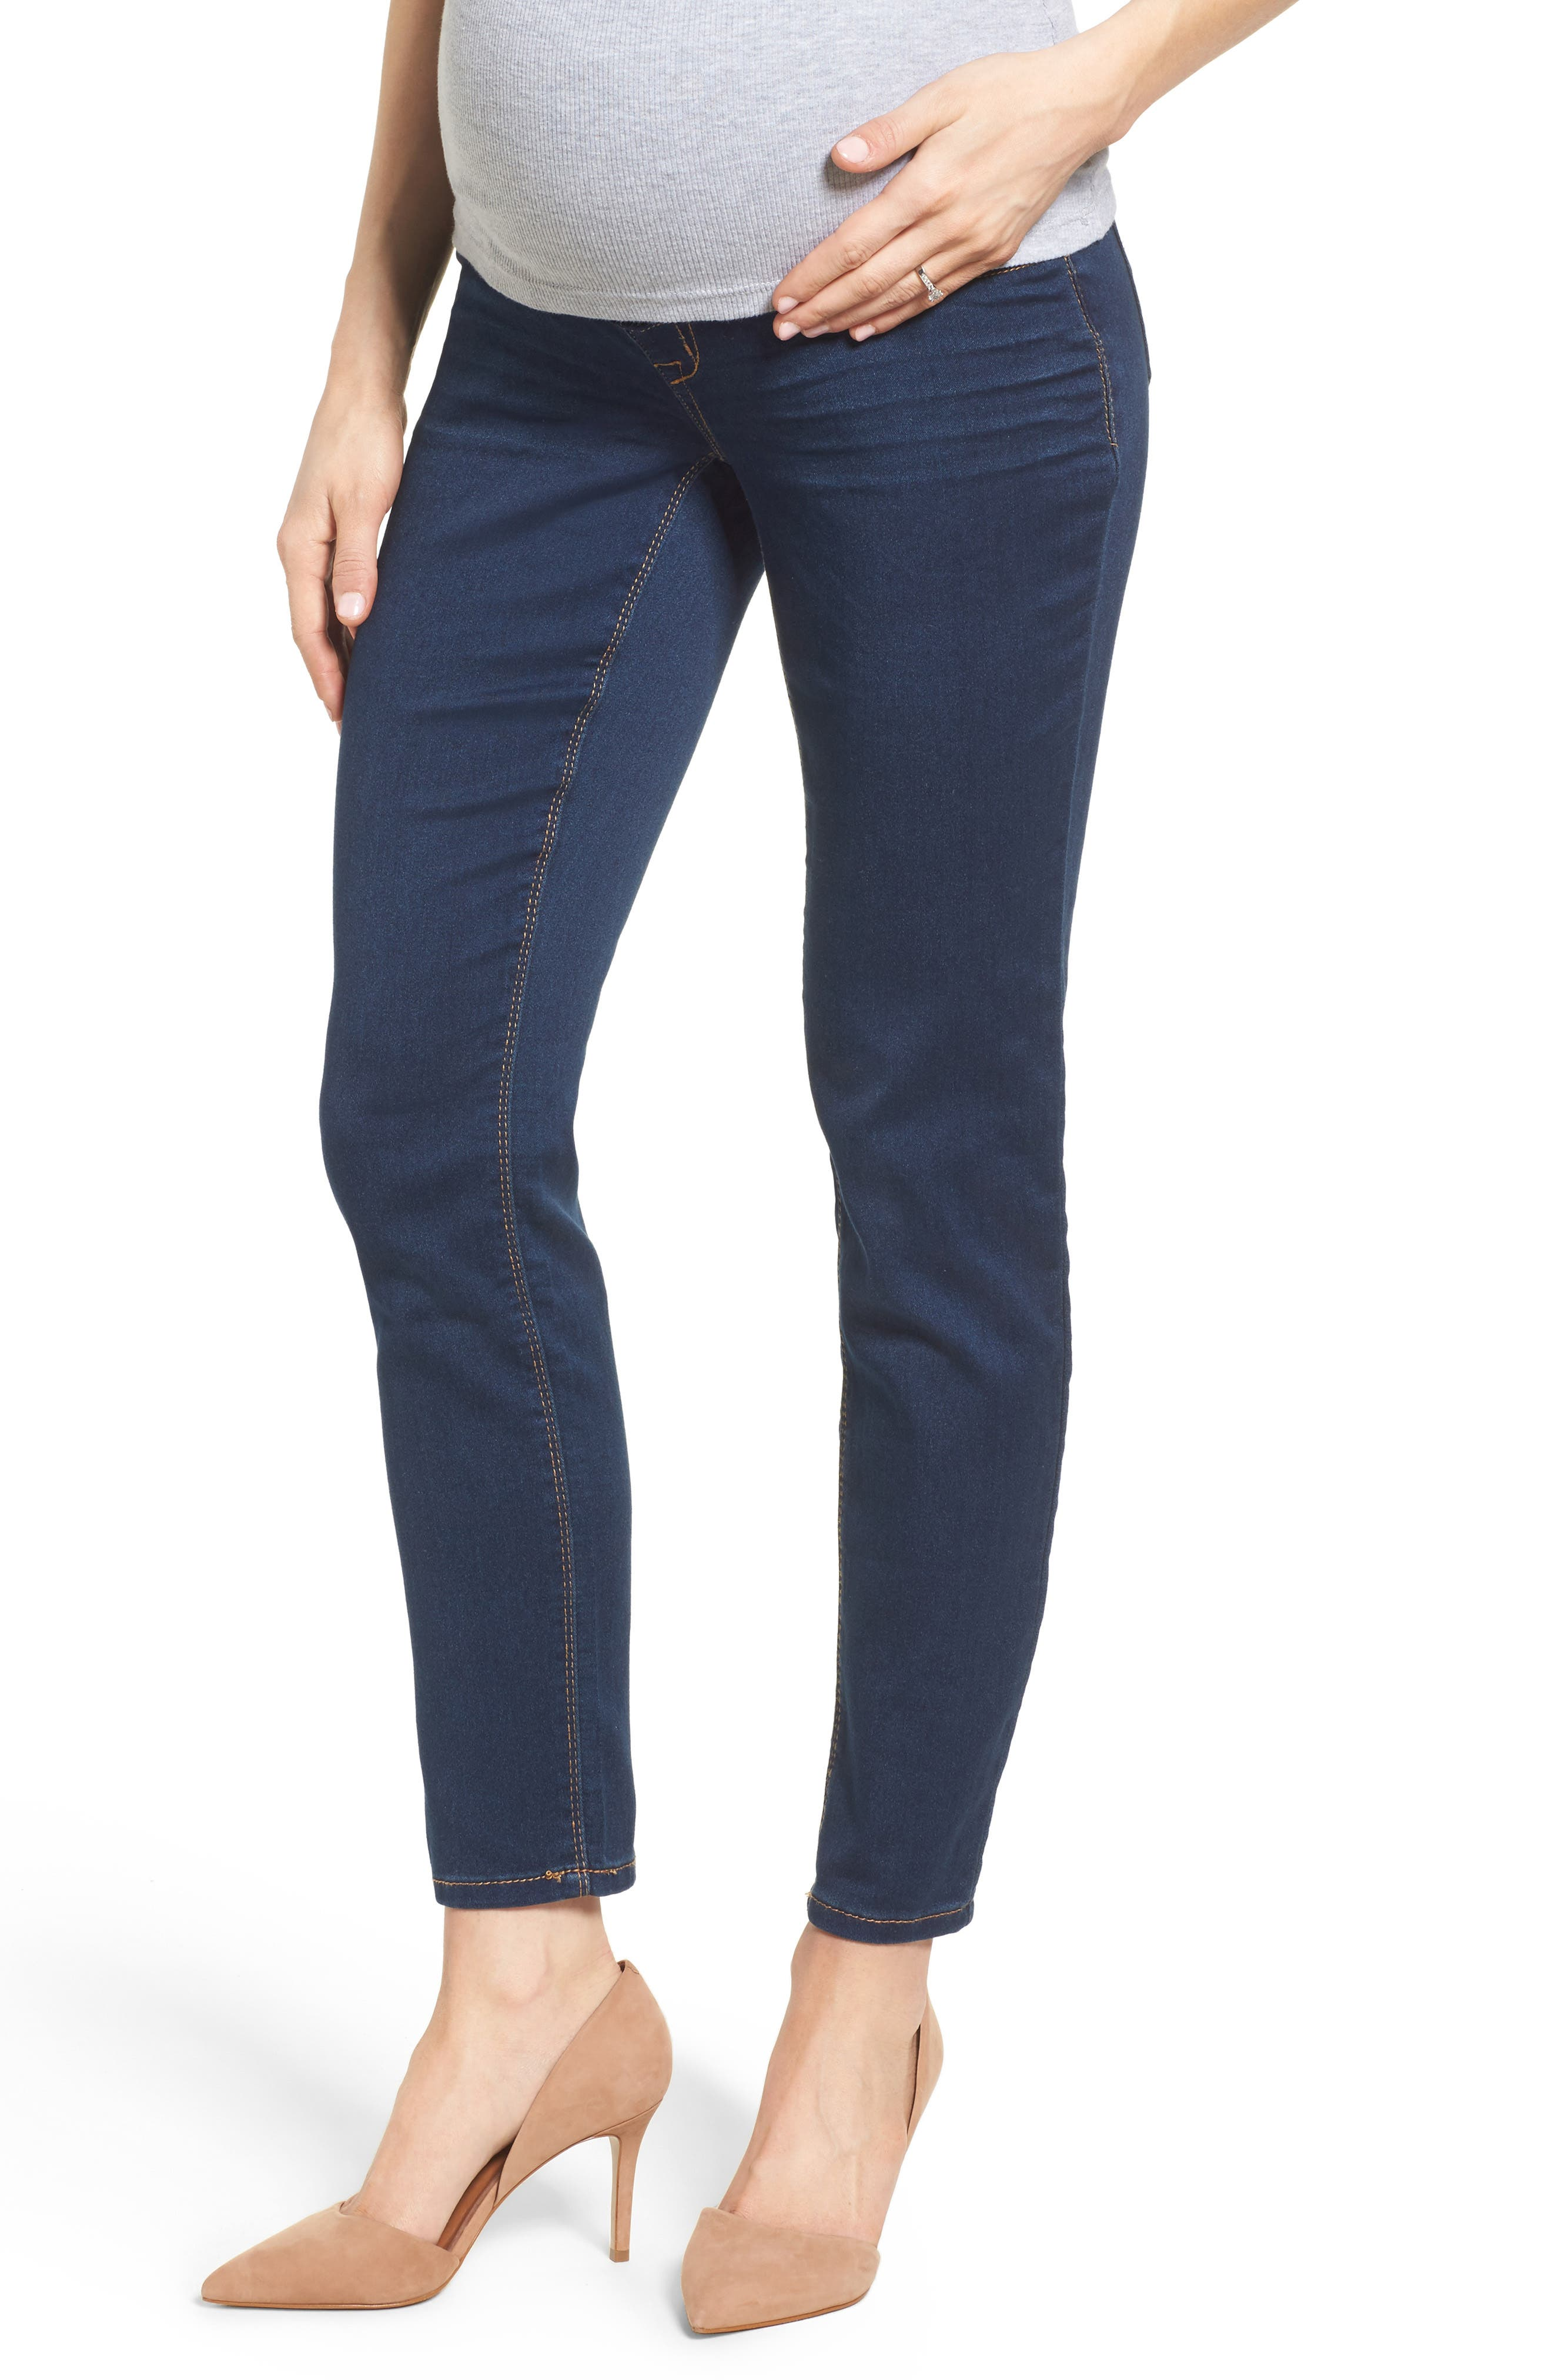 1822 Denim Butter Maternity Skinny Jeans (Midnight)